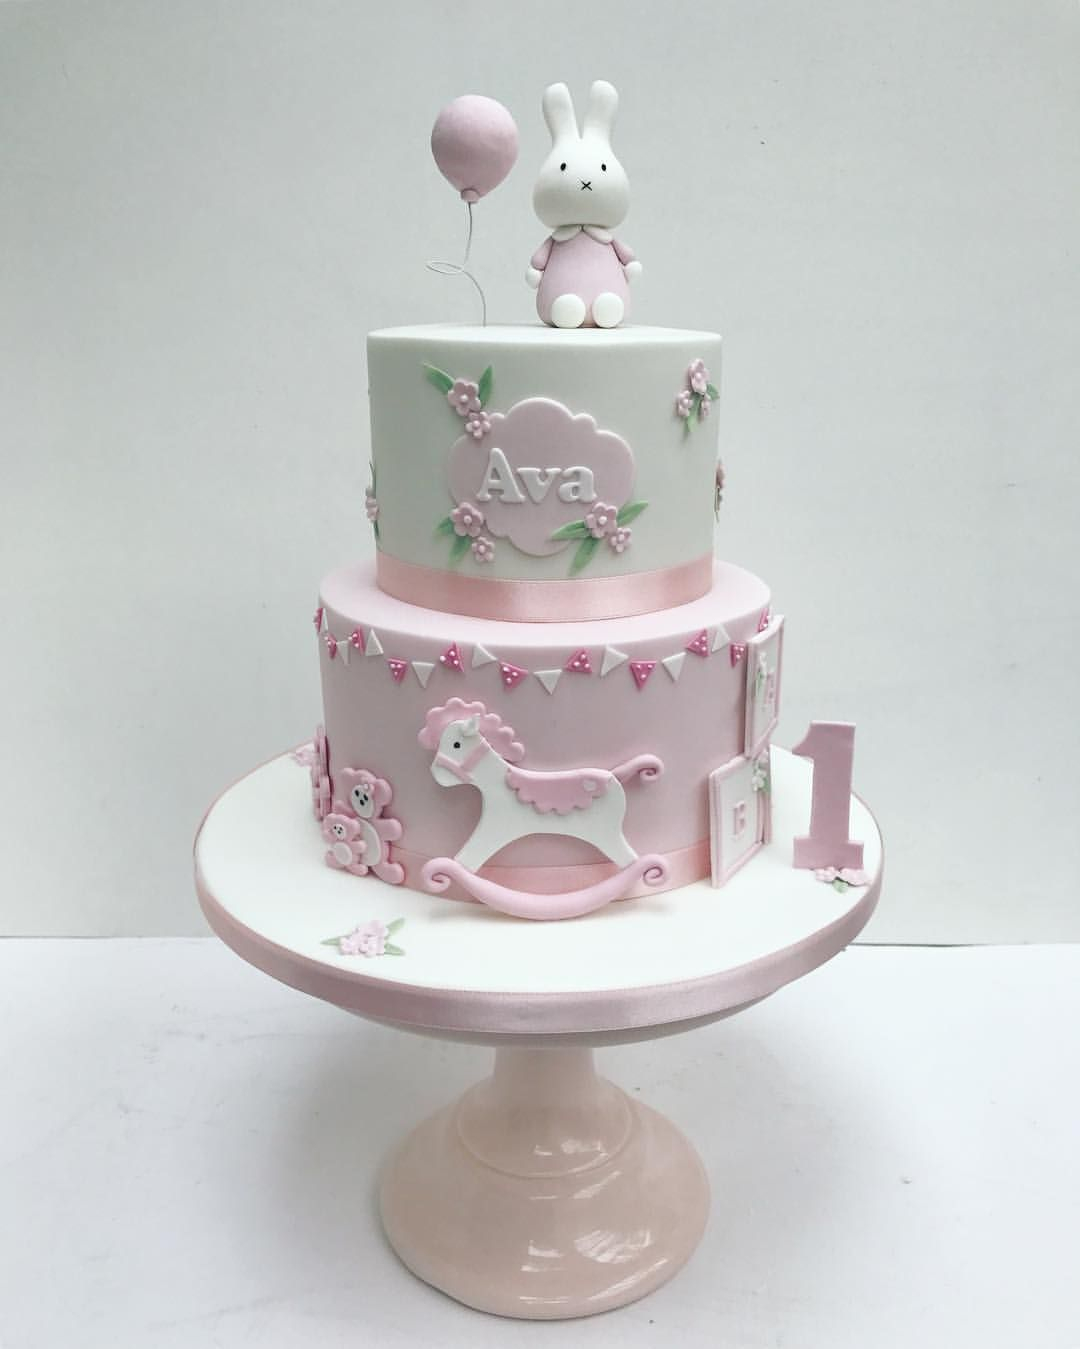 Girls First Birthday Cake Miffy Pink Bunny Cake For Little Girls First Birthday Sweet